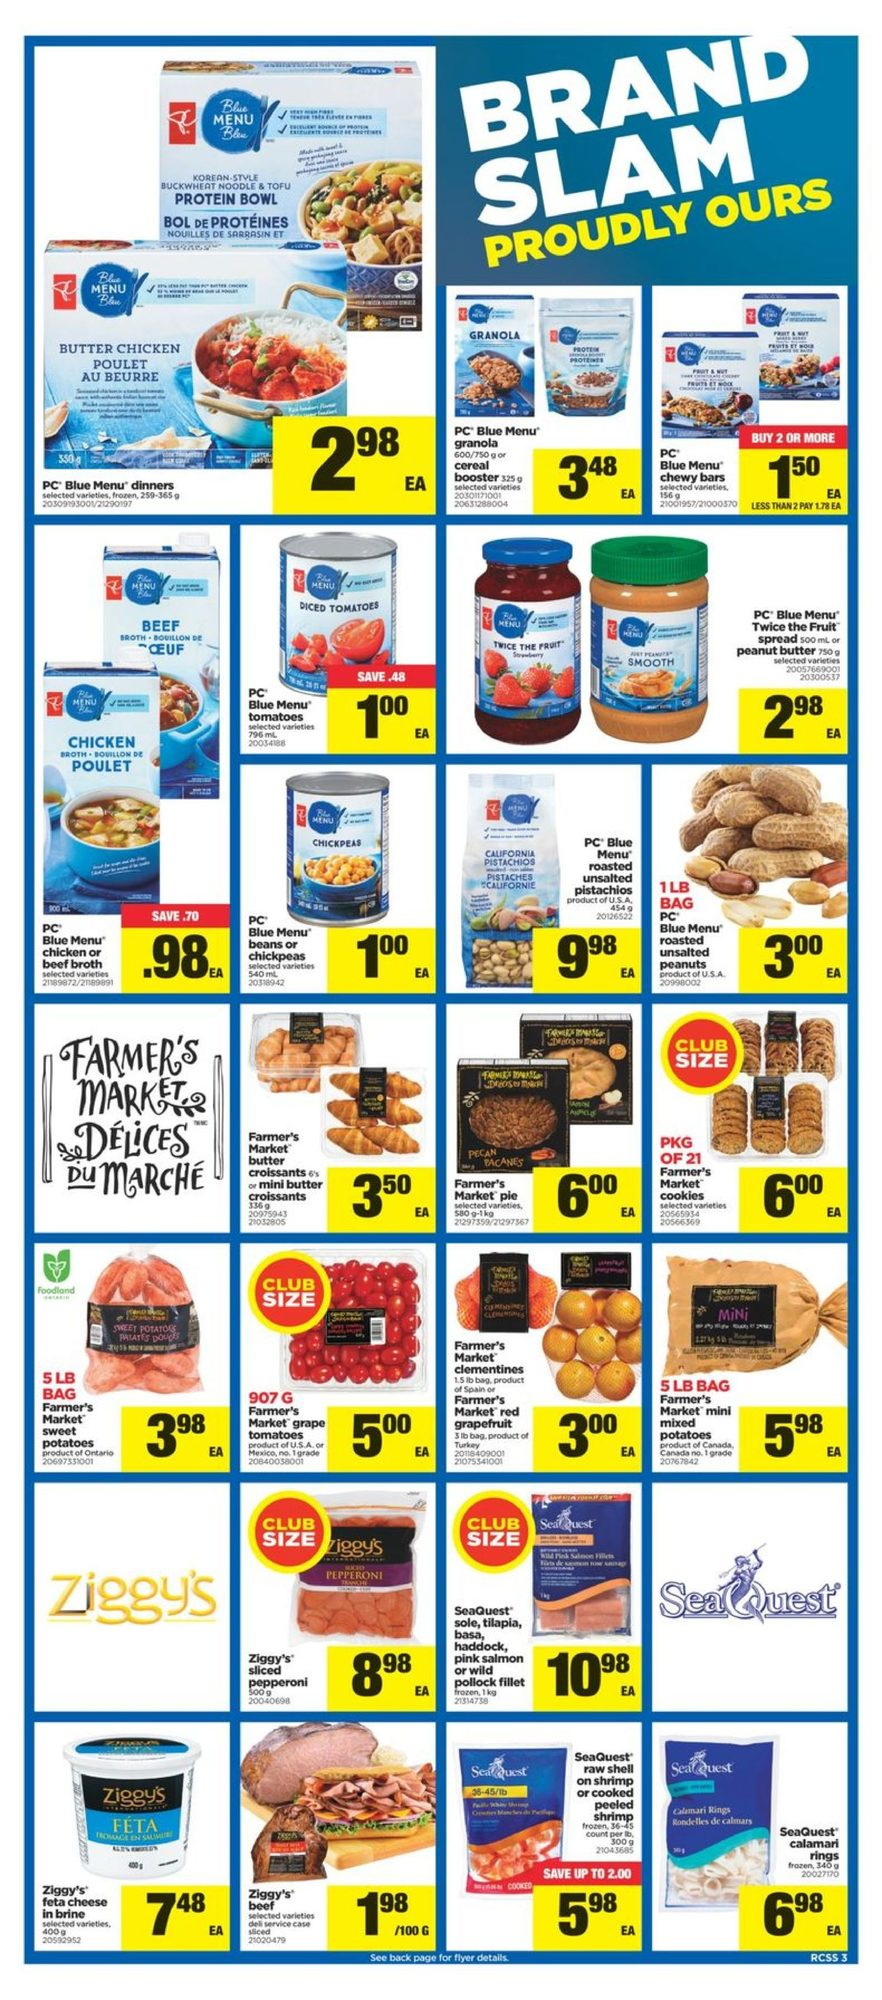 Real Canadian Superstore - Weekly Flyer Specials - Page 3